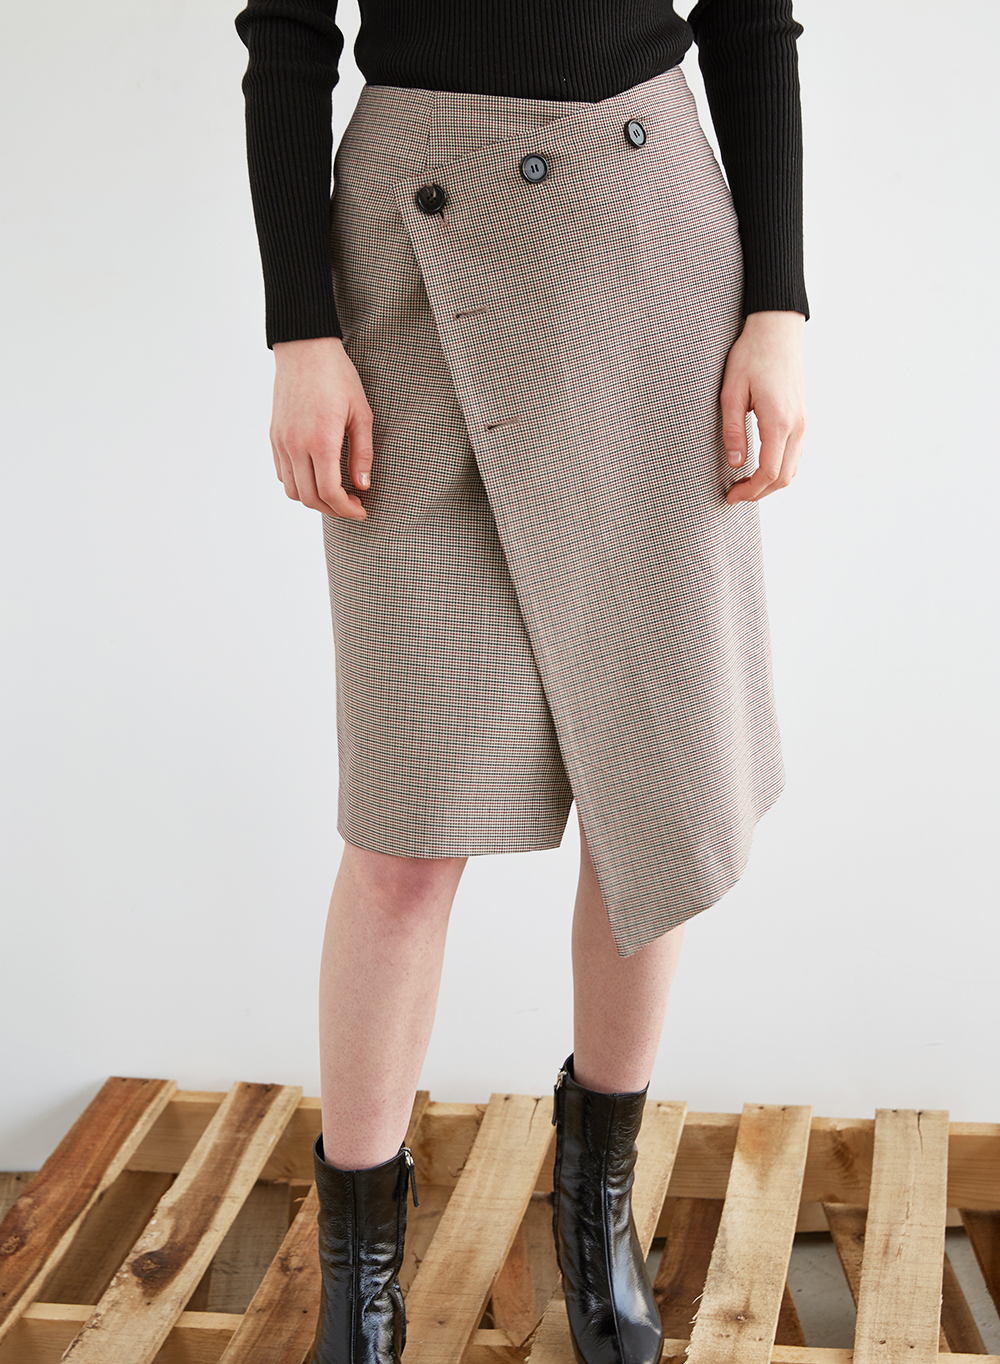 FW18 BUTTON RAP SKIRT